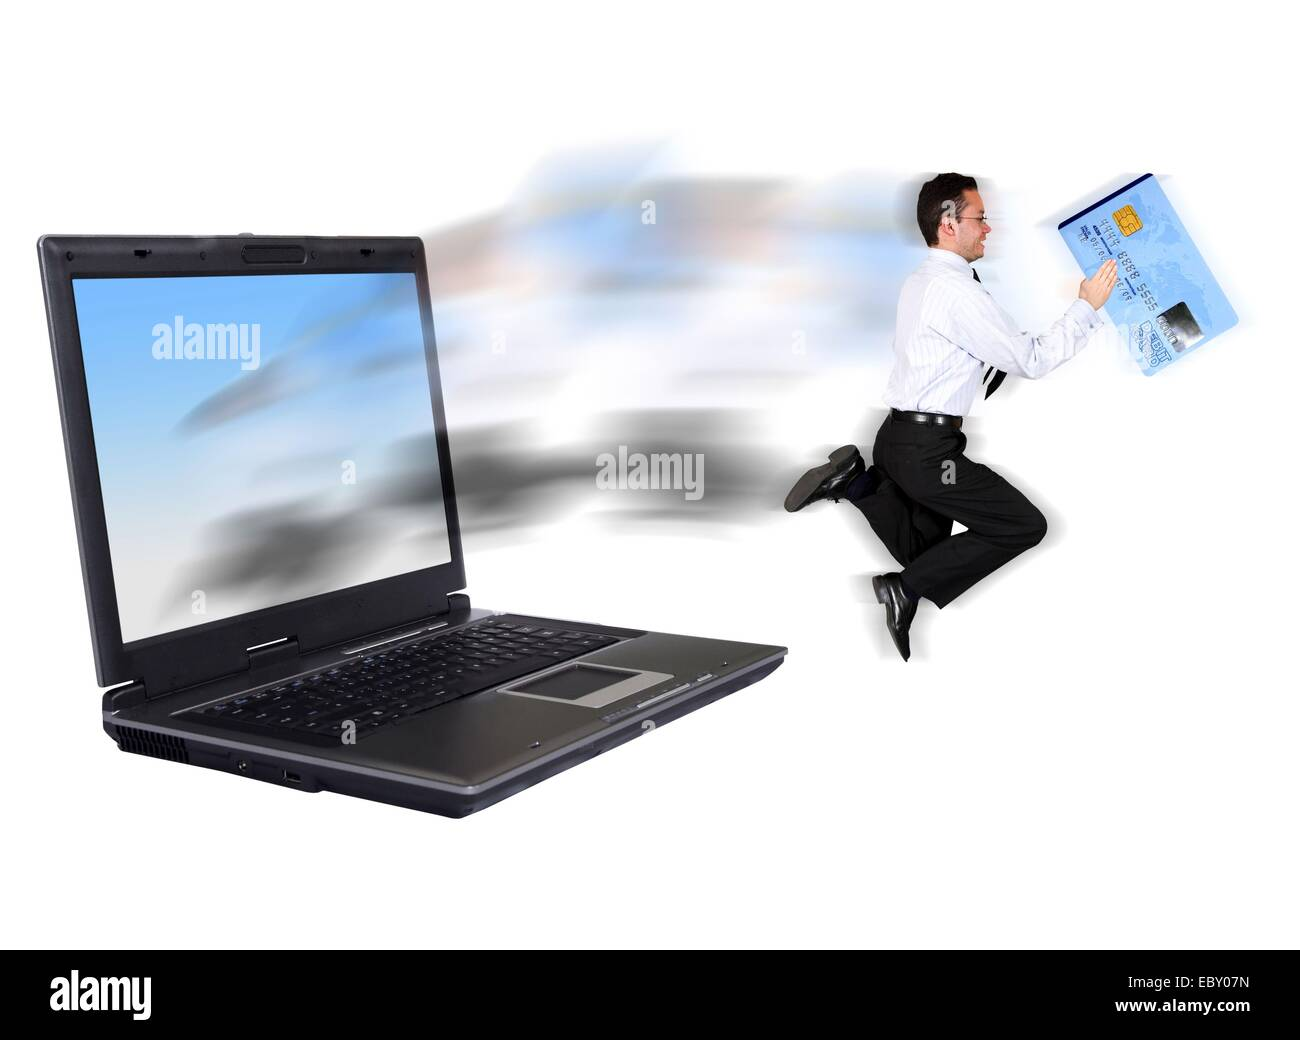 symbolic image for online security: businessman stealing a credit card and escaping from a latop with secret datas - Stock Image